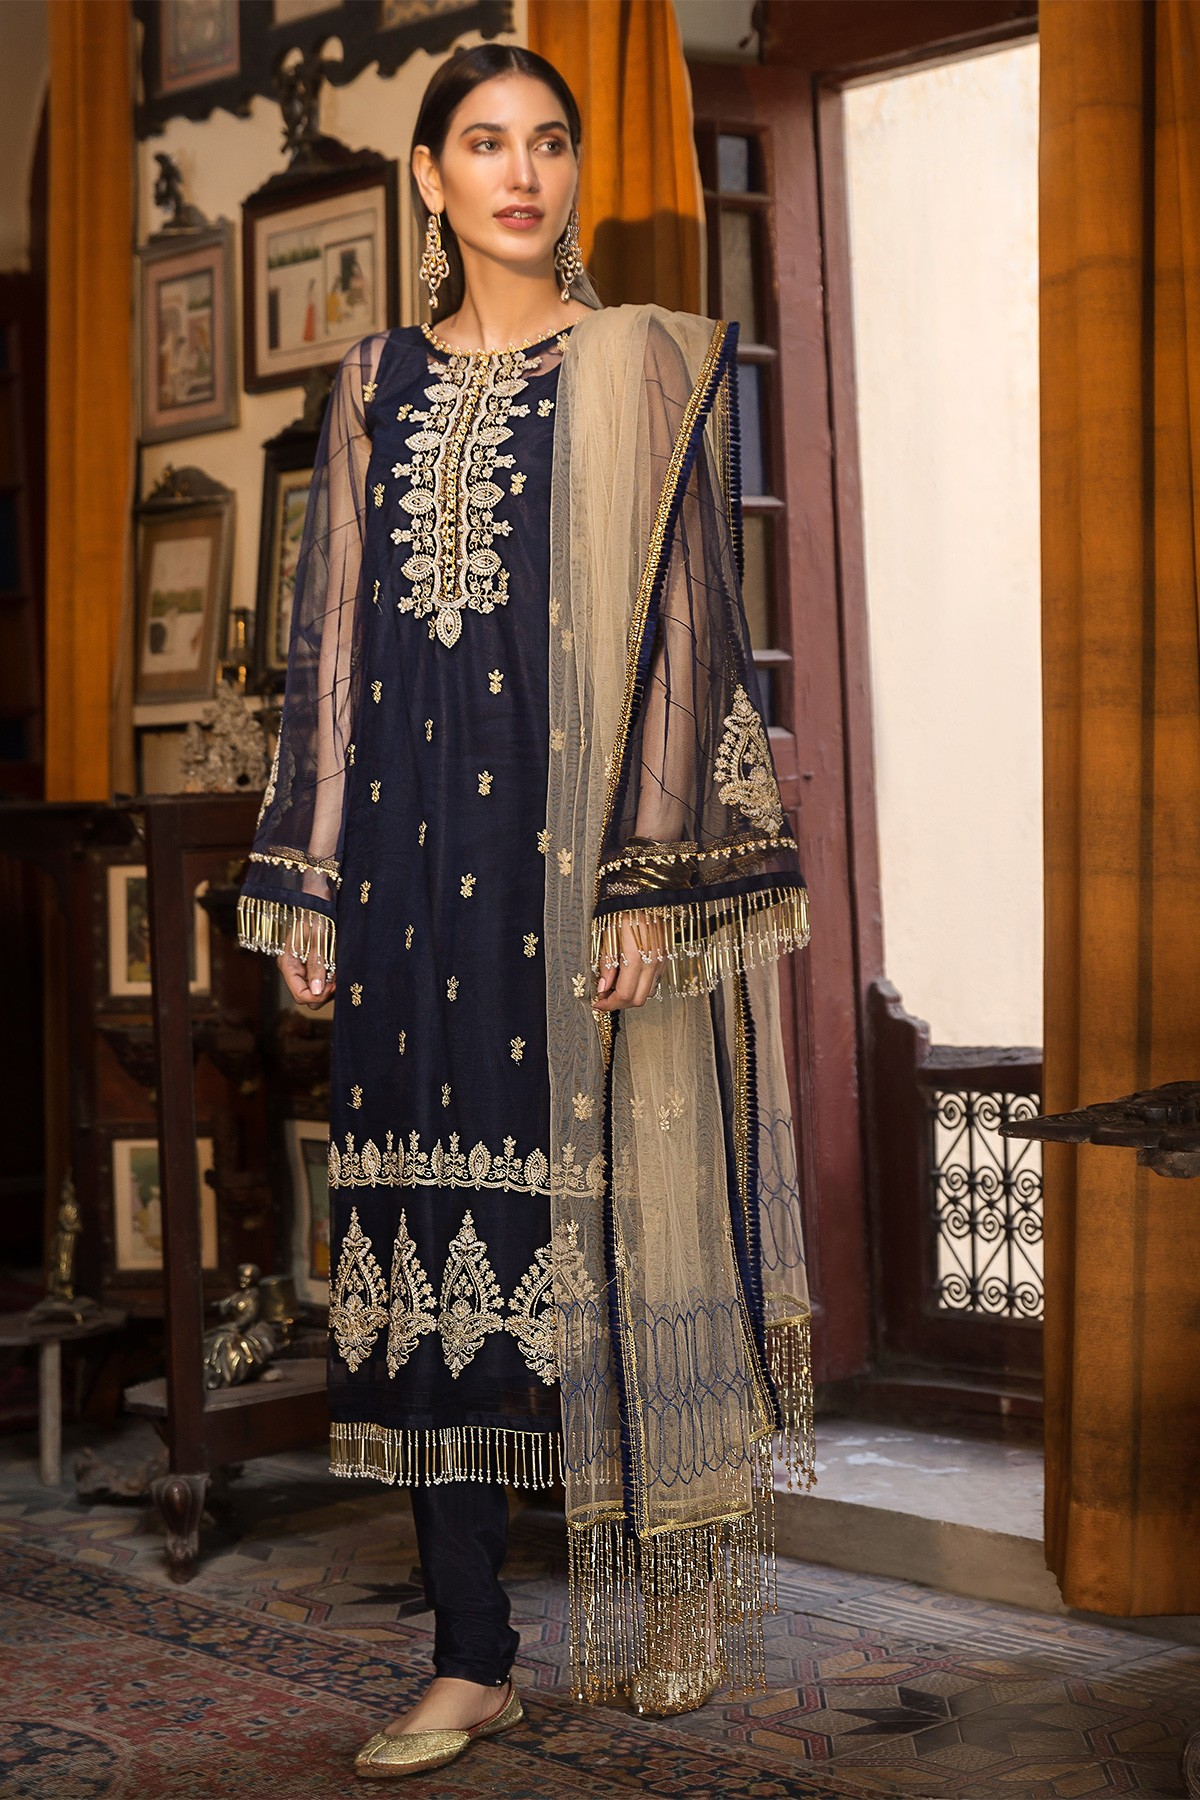 Embroidered Shirt and dupatta